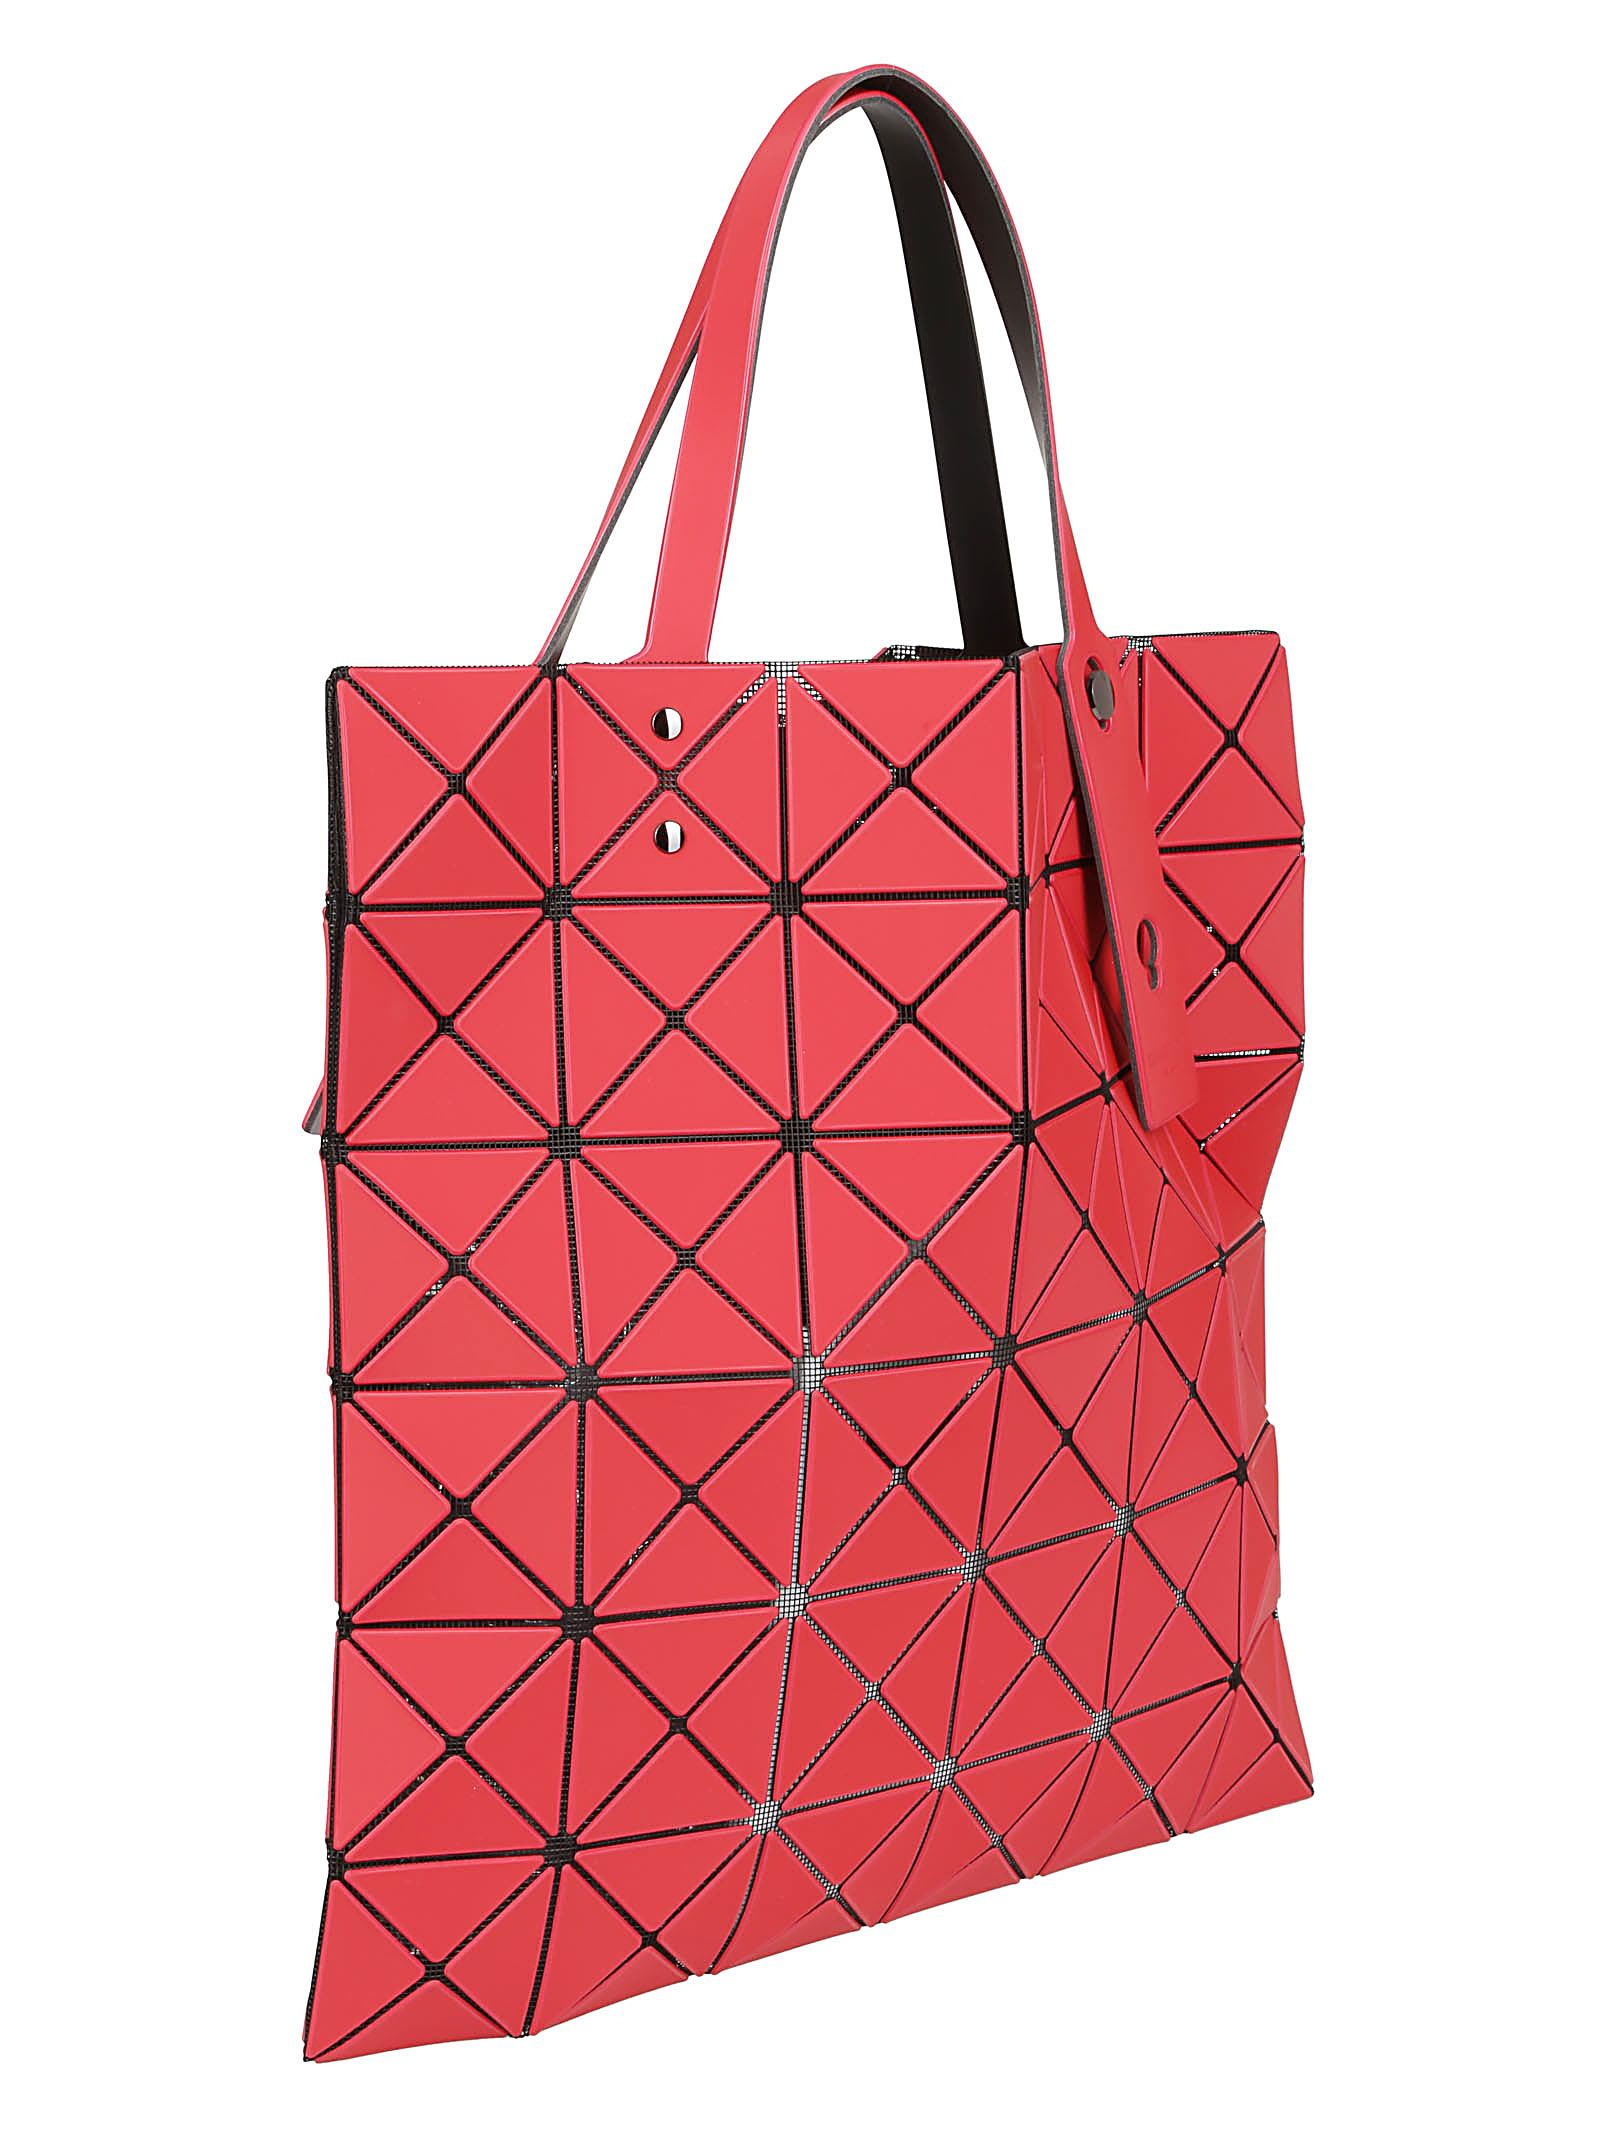 46539b18f4 Bao Bao Issey Miyake Bao Bao Issey Miyake Geometric Tote - Red ...